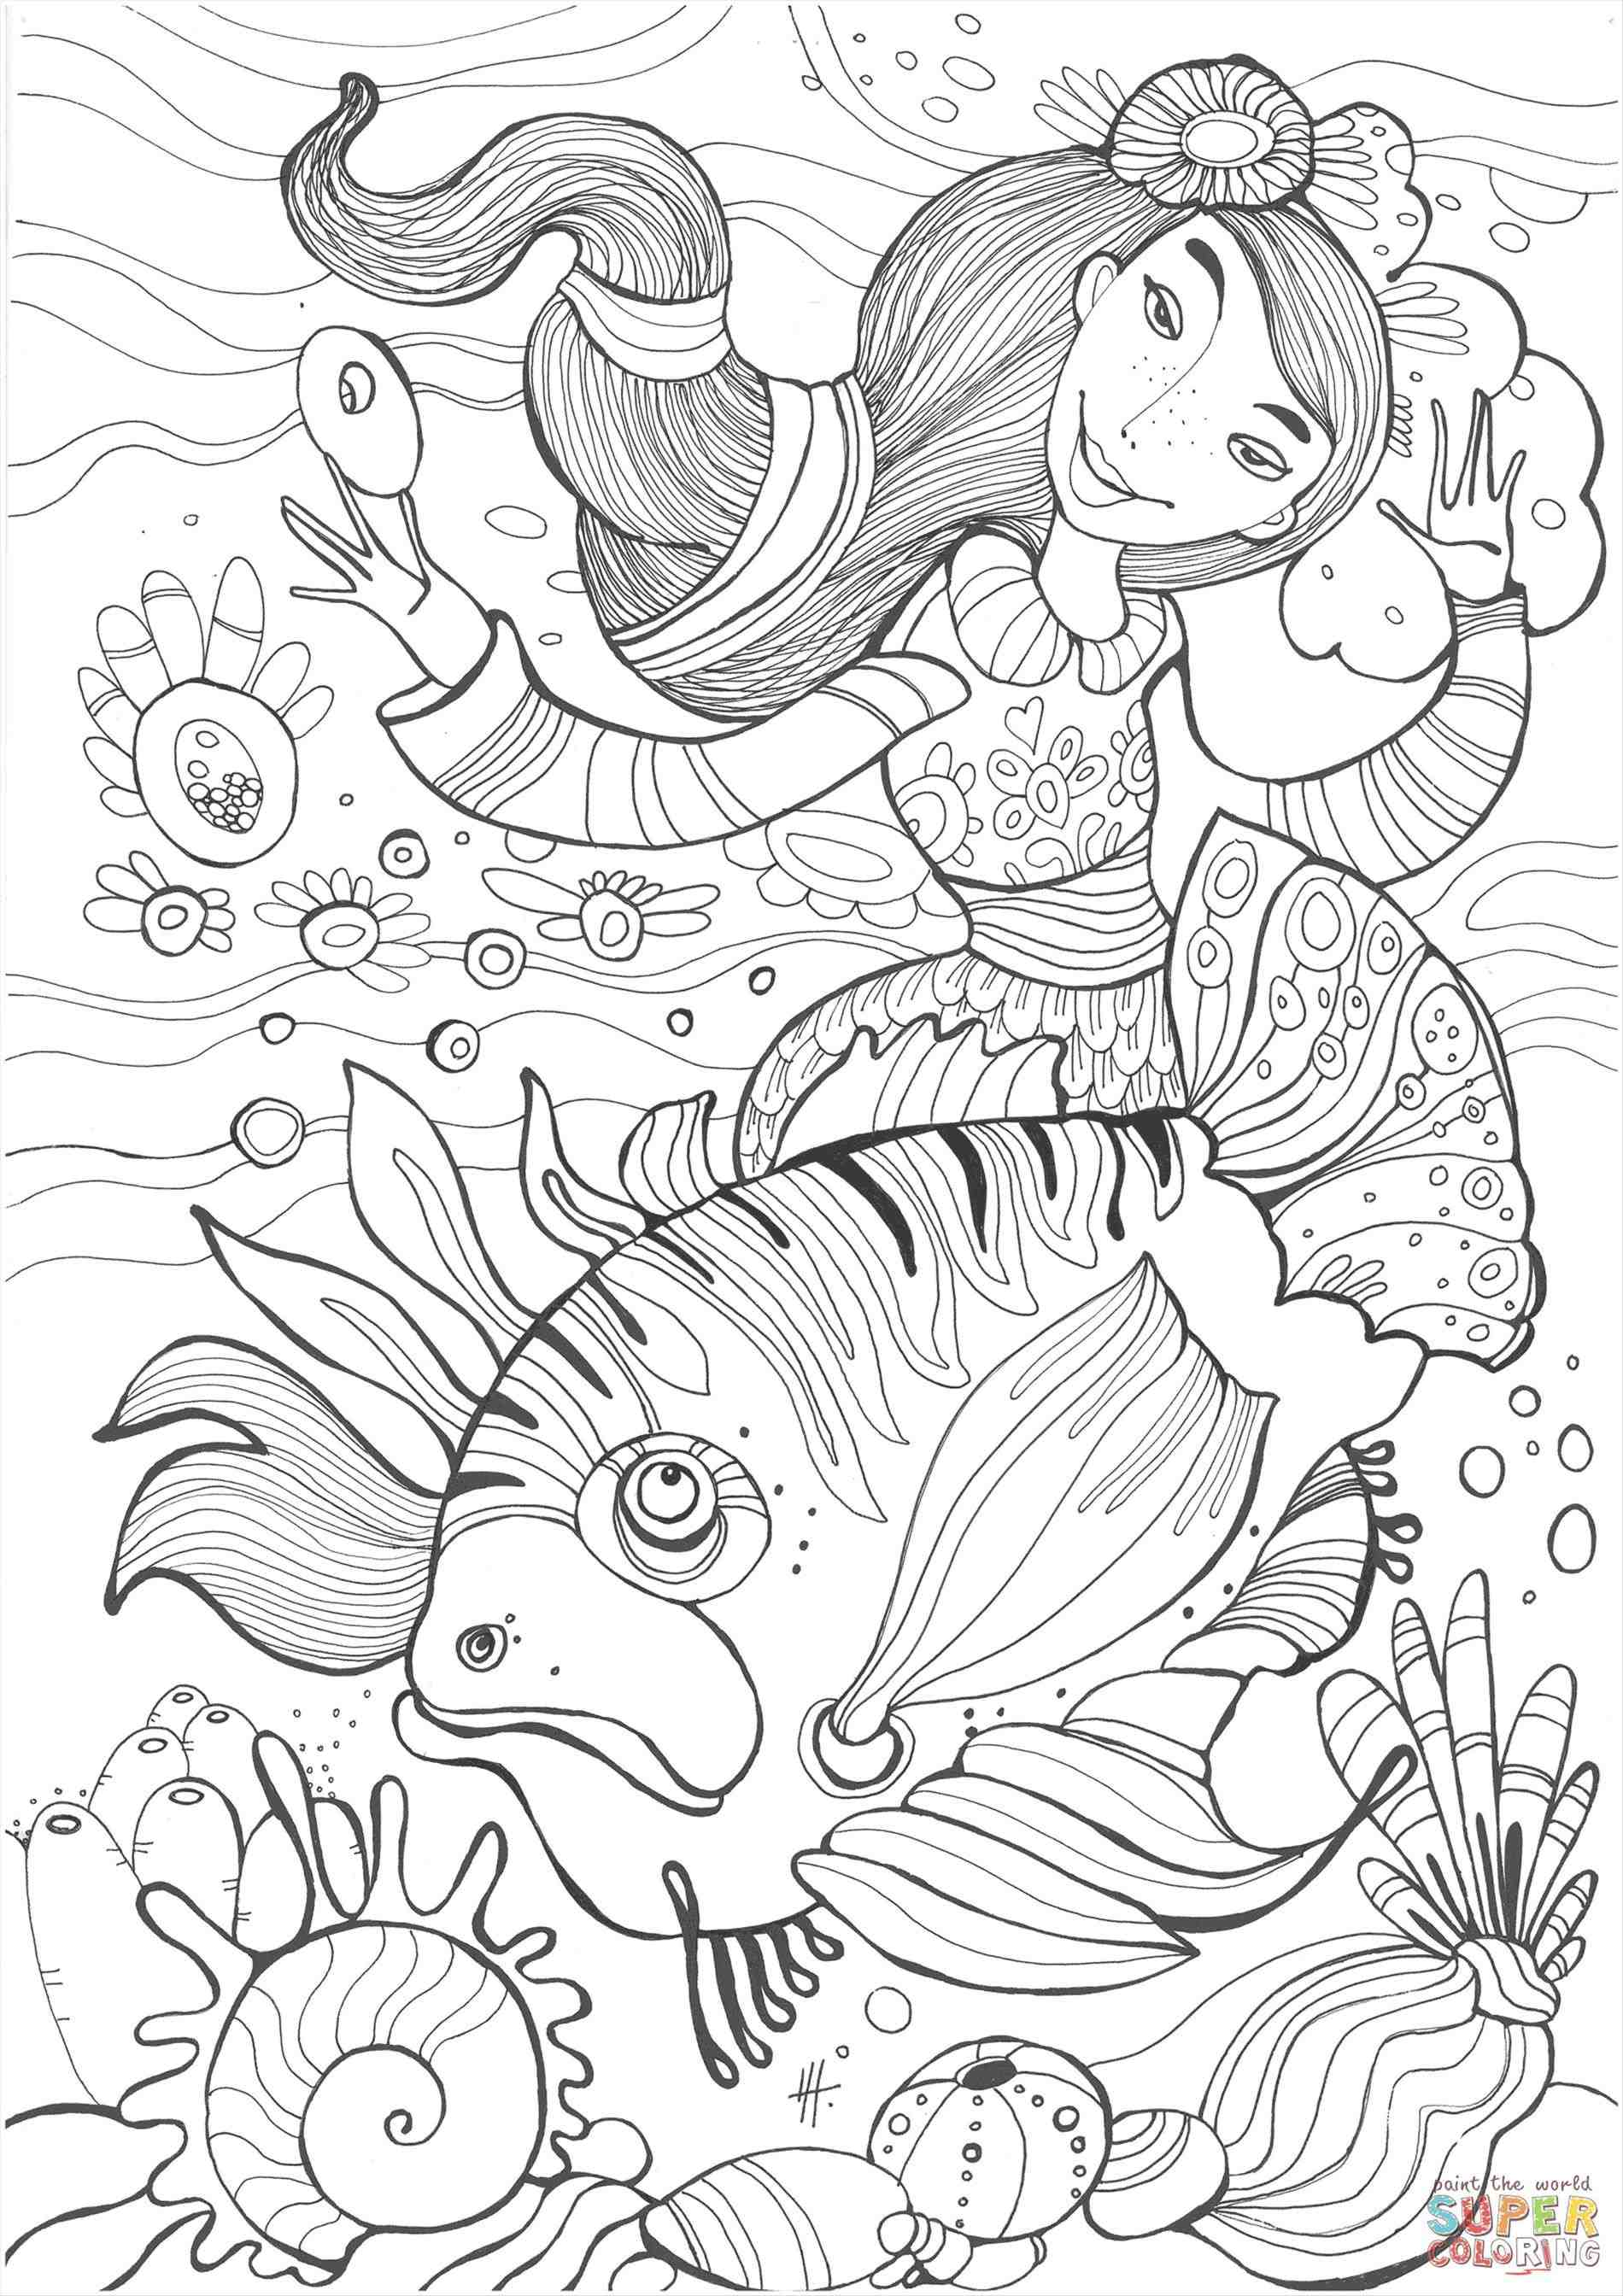 hard advanced mermaid coloring pages realistic mermaid coloring pages hard mermaids colouring pages advanced mermaid hard coloring